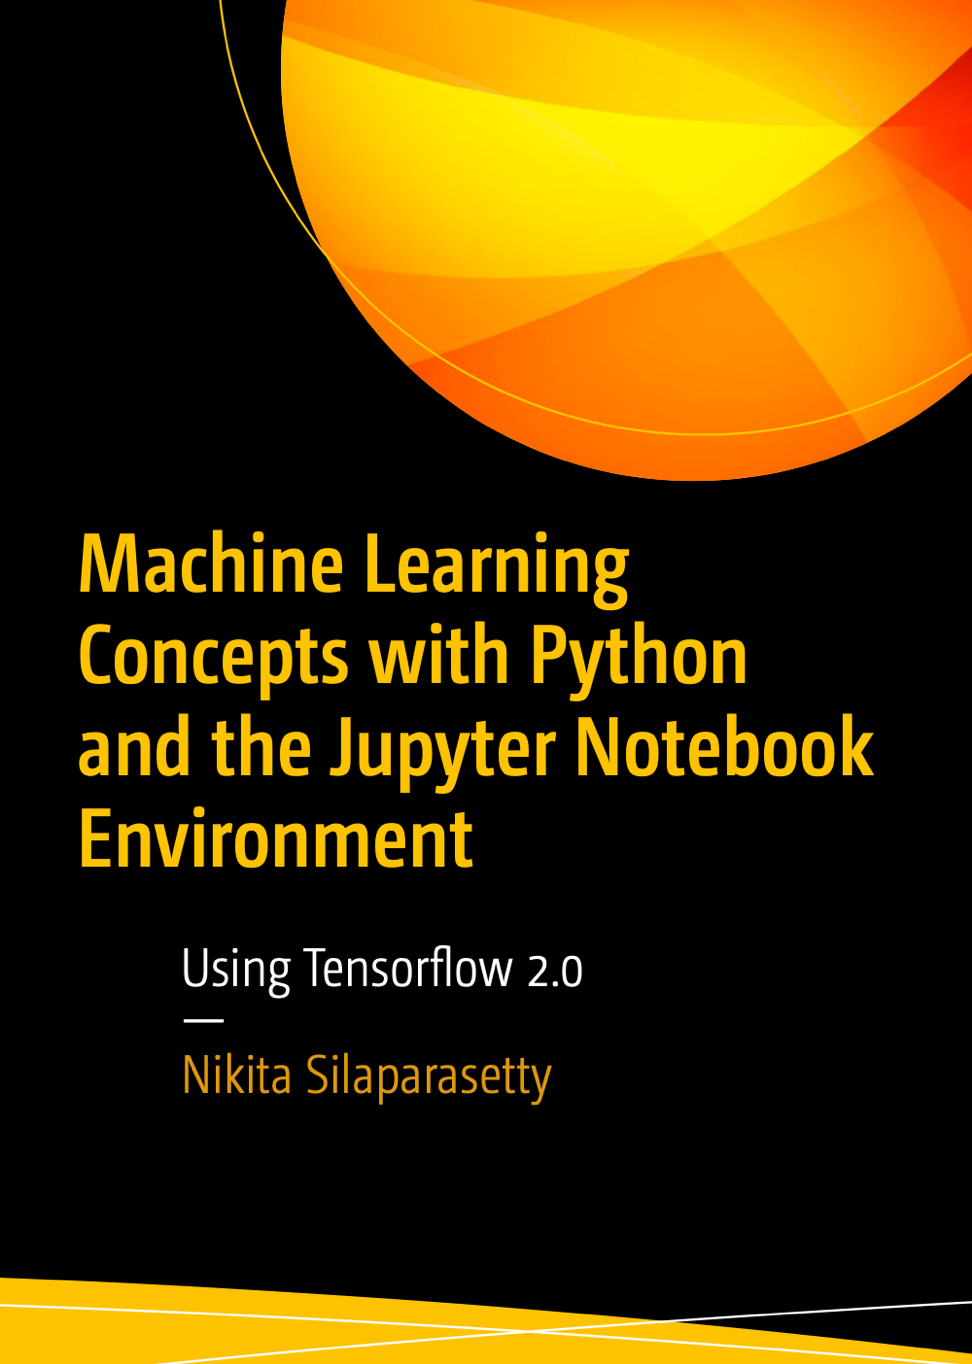 Machine Learning Concepts with Python and the Jupyter Notebook Environment at Social-Media.press